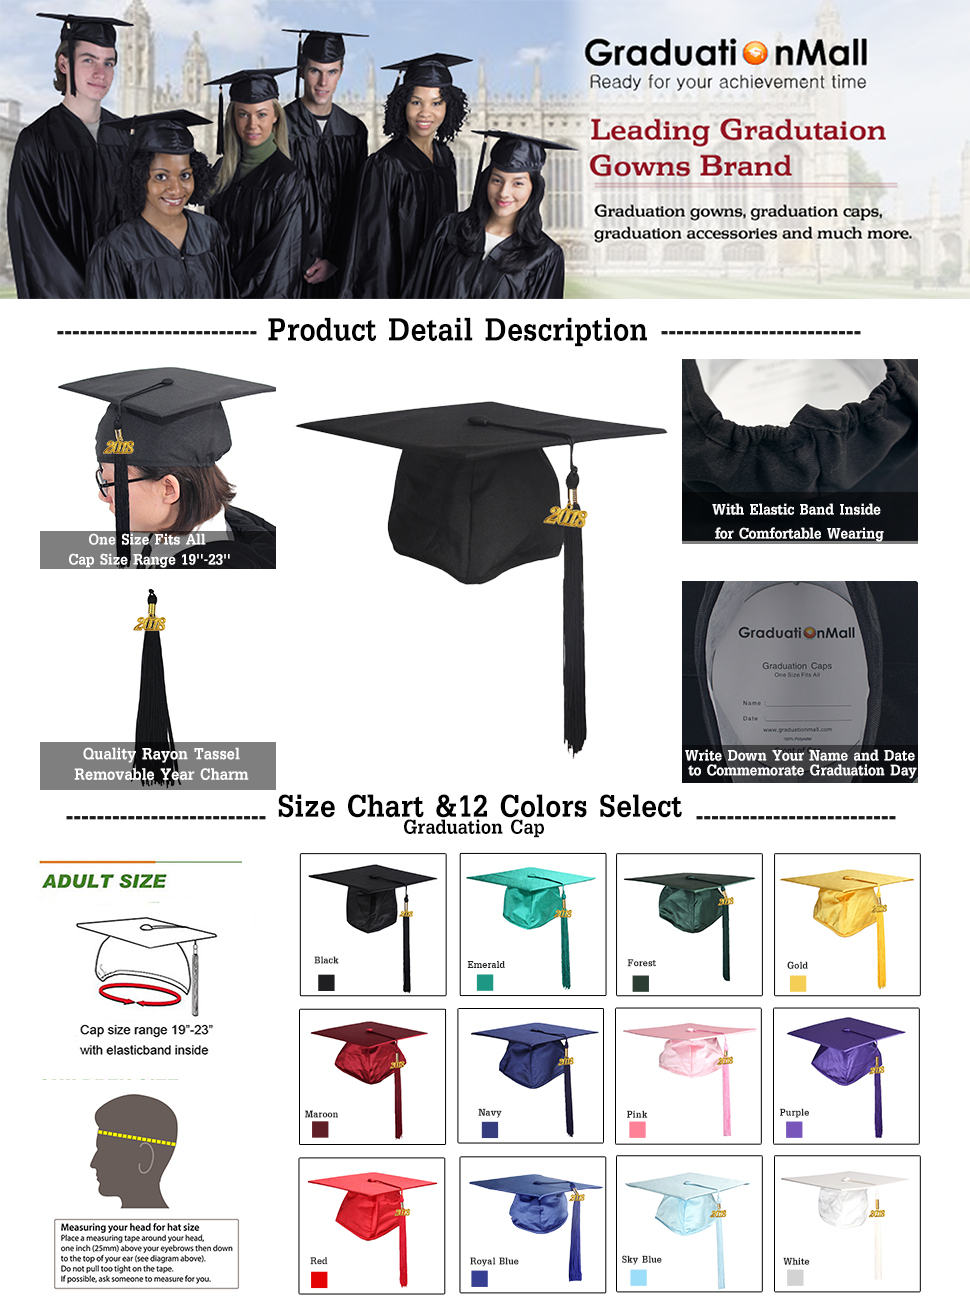 Outstanding Graduation Gown Colours Meaning Composition - Images for ...